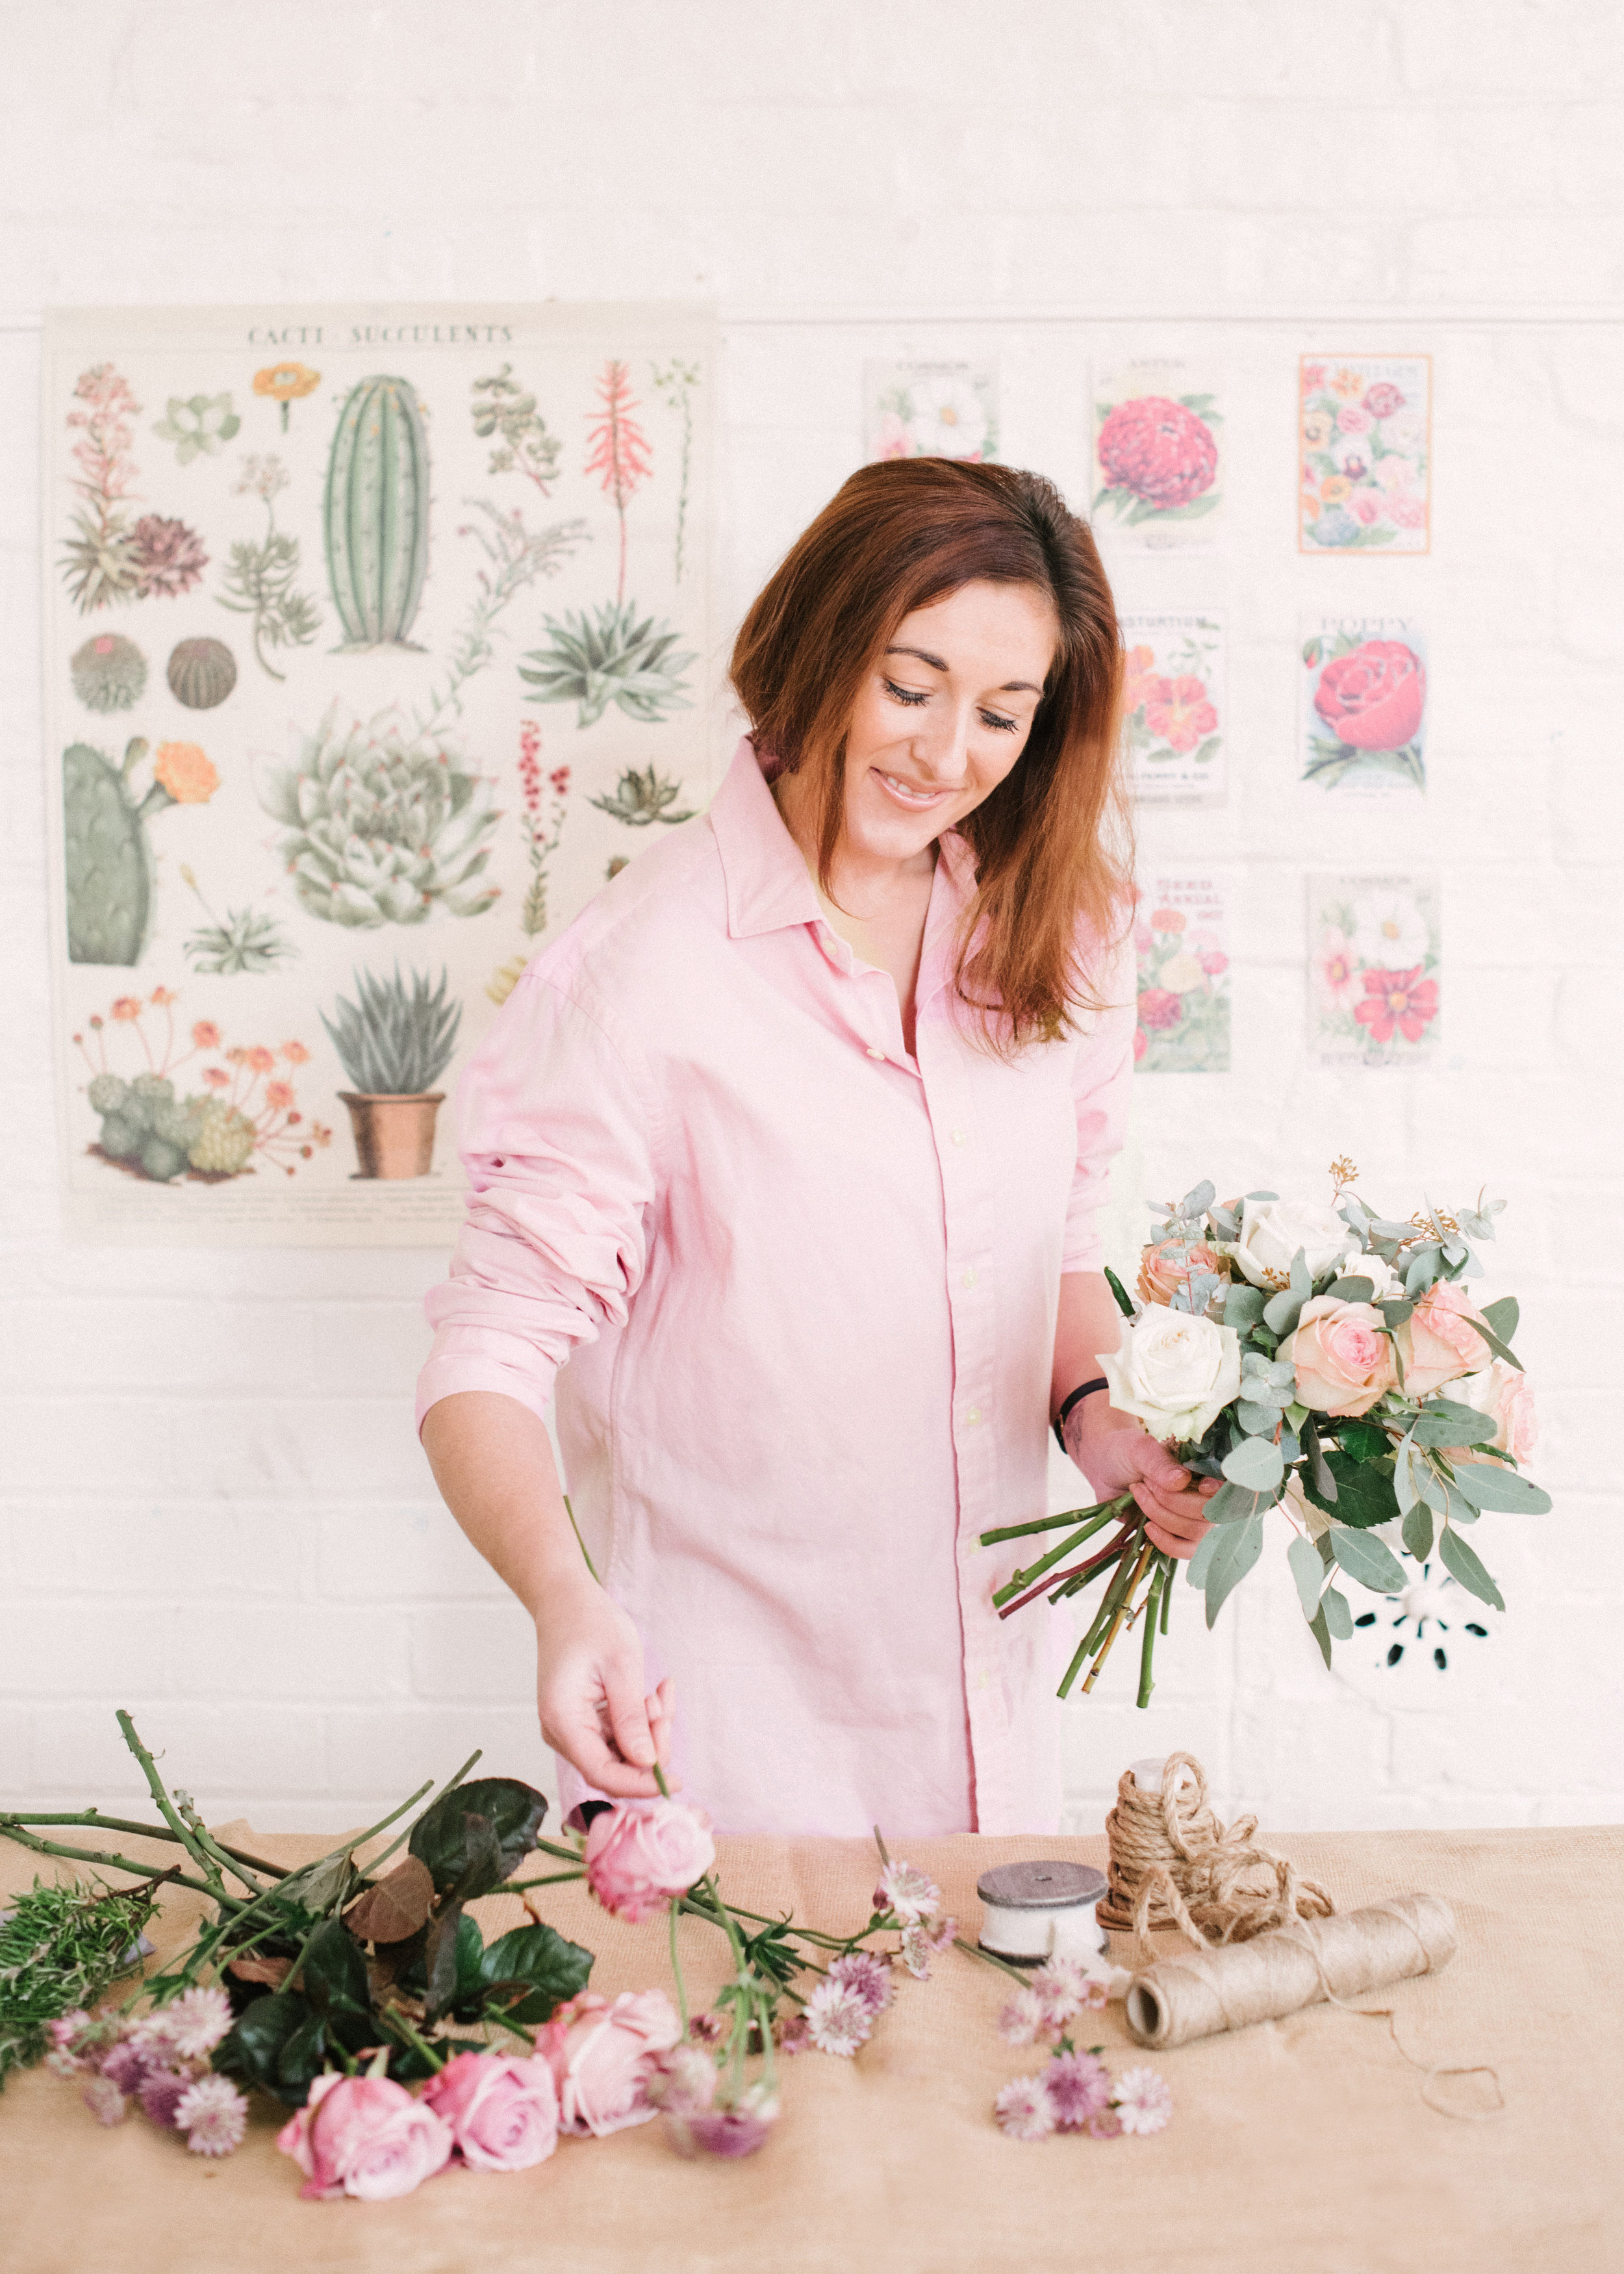 Meet Becky - Founder of Feather & Ferns a bespoke wedding and event florist based in Cambridge, Cambridgeshire specialising in wedding flowers. I'm here to support you through your wedding planning stages and help to make your experience joyful and fun. Feel free to ask me anything!